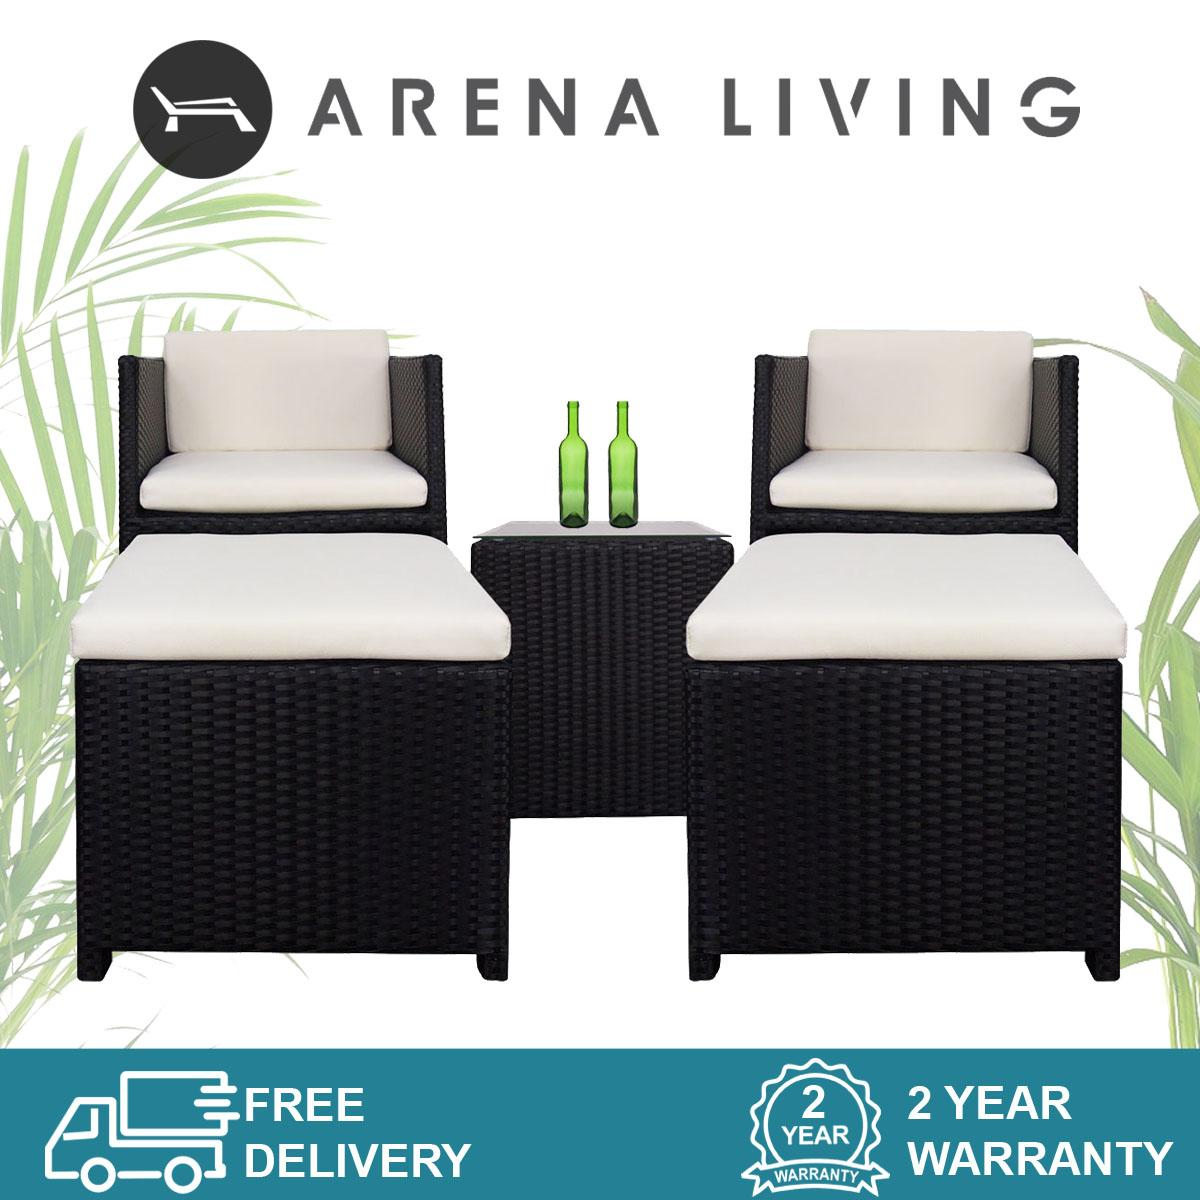 Splendor Armchair Set Creamy White Cushions, Outdoor Furniture by Arena Living